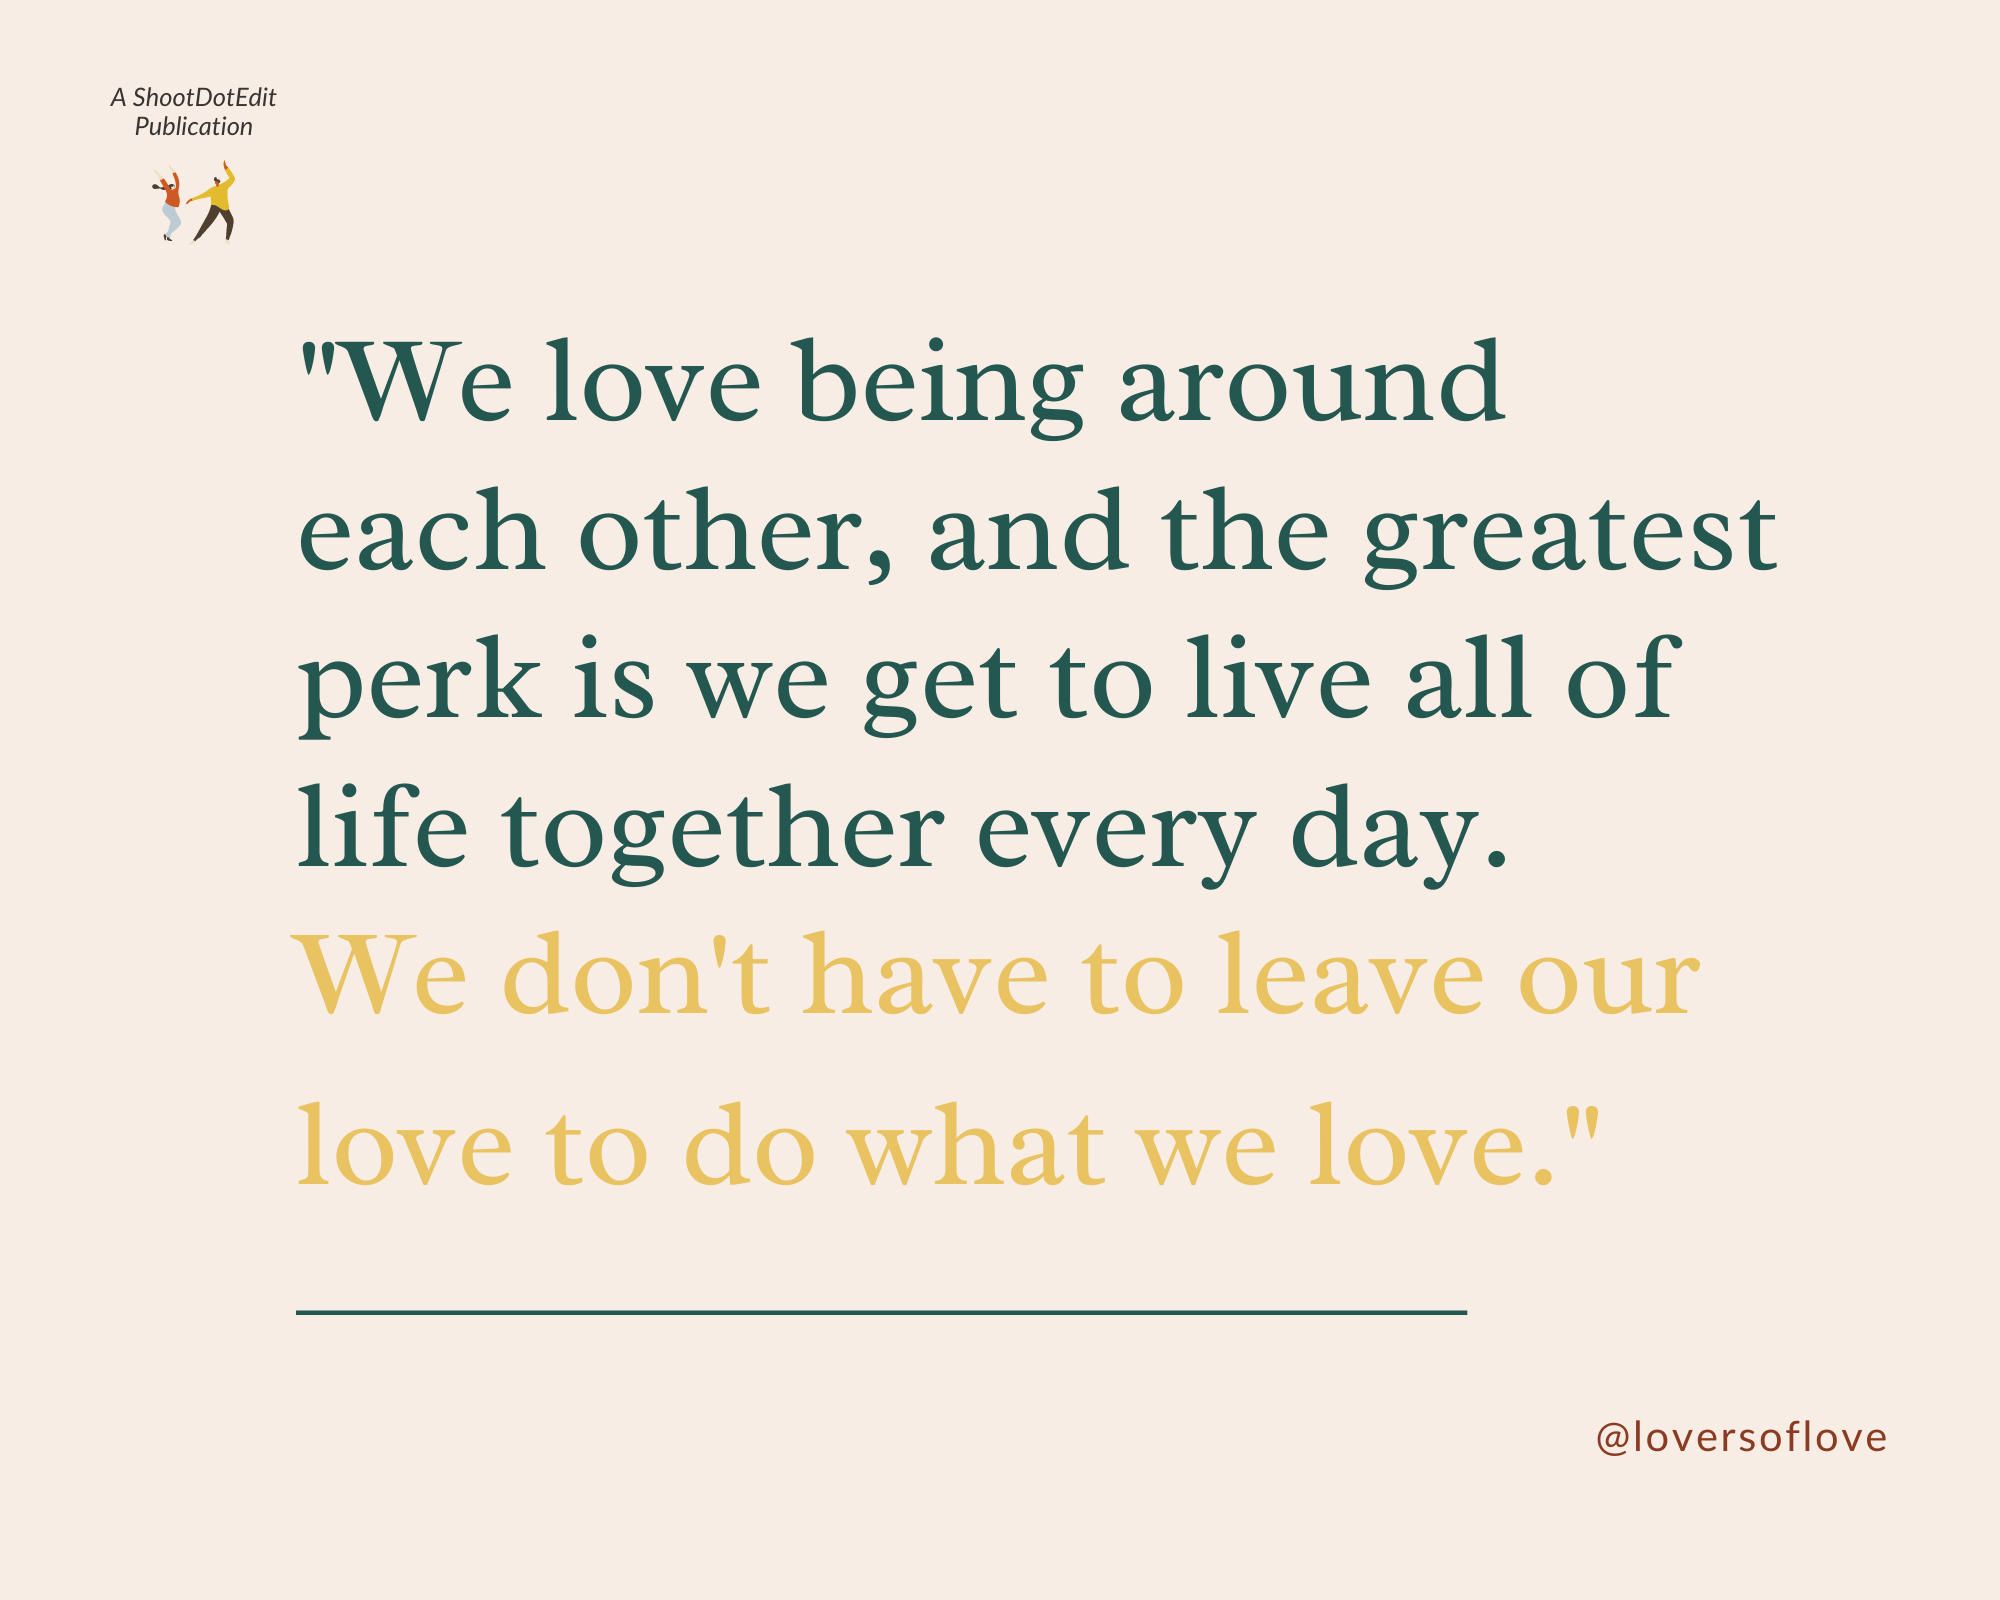 Infographic stating a quote from Lovers of Love